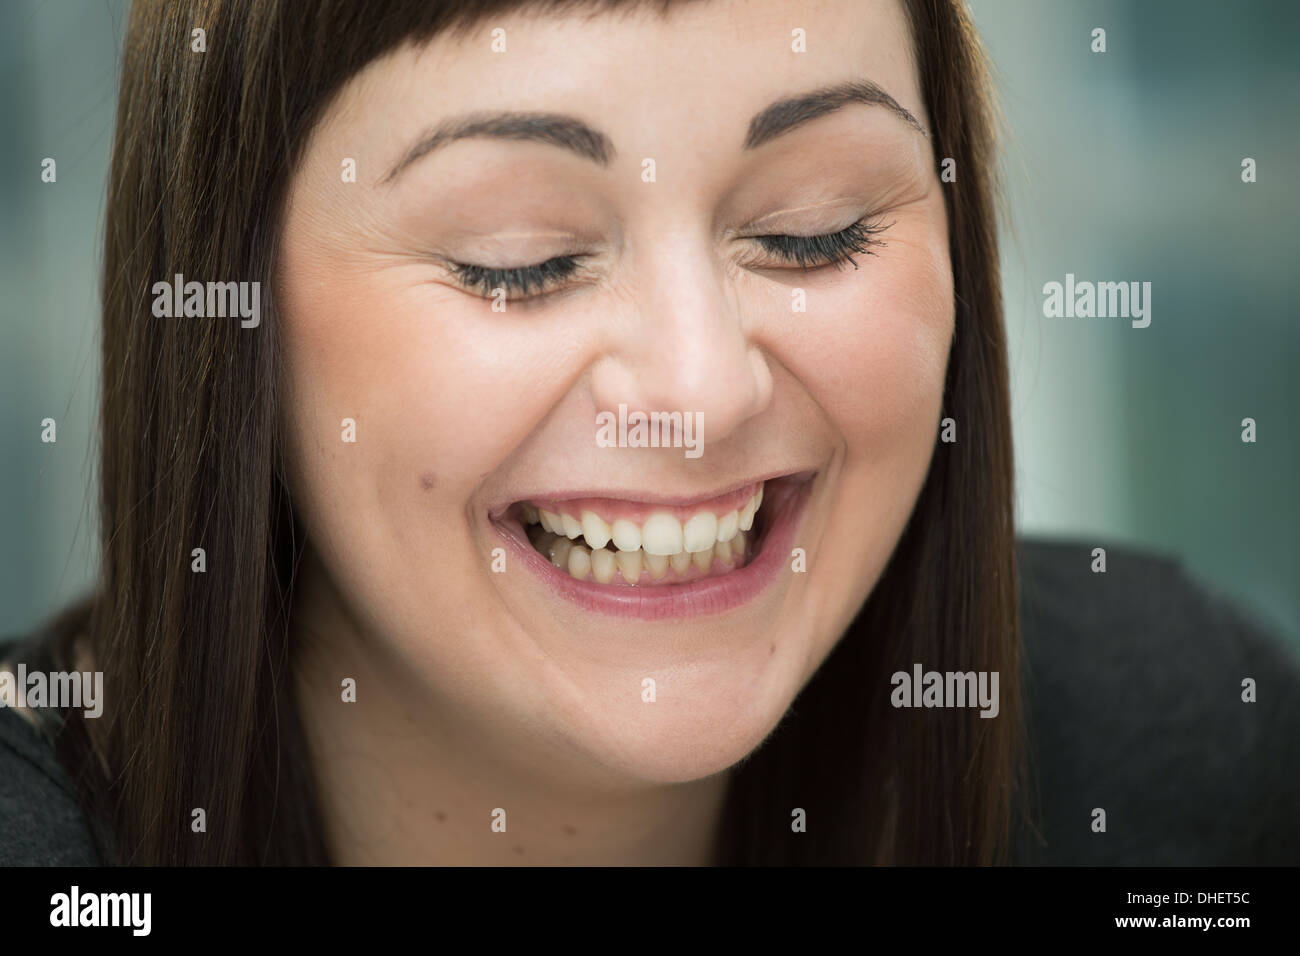 Young woman laughing, eyes closed - Stock Image